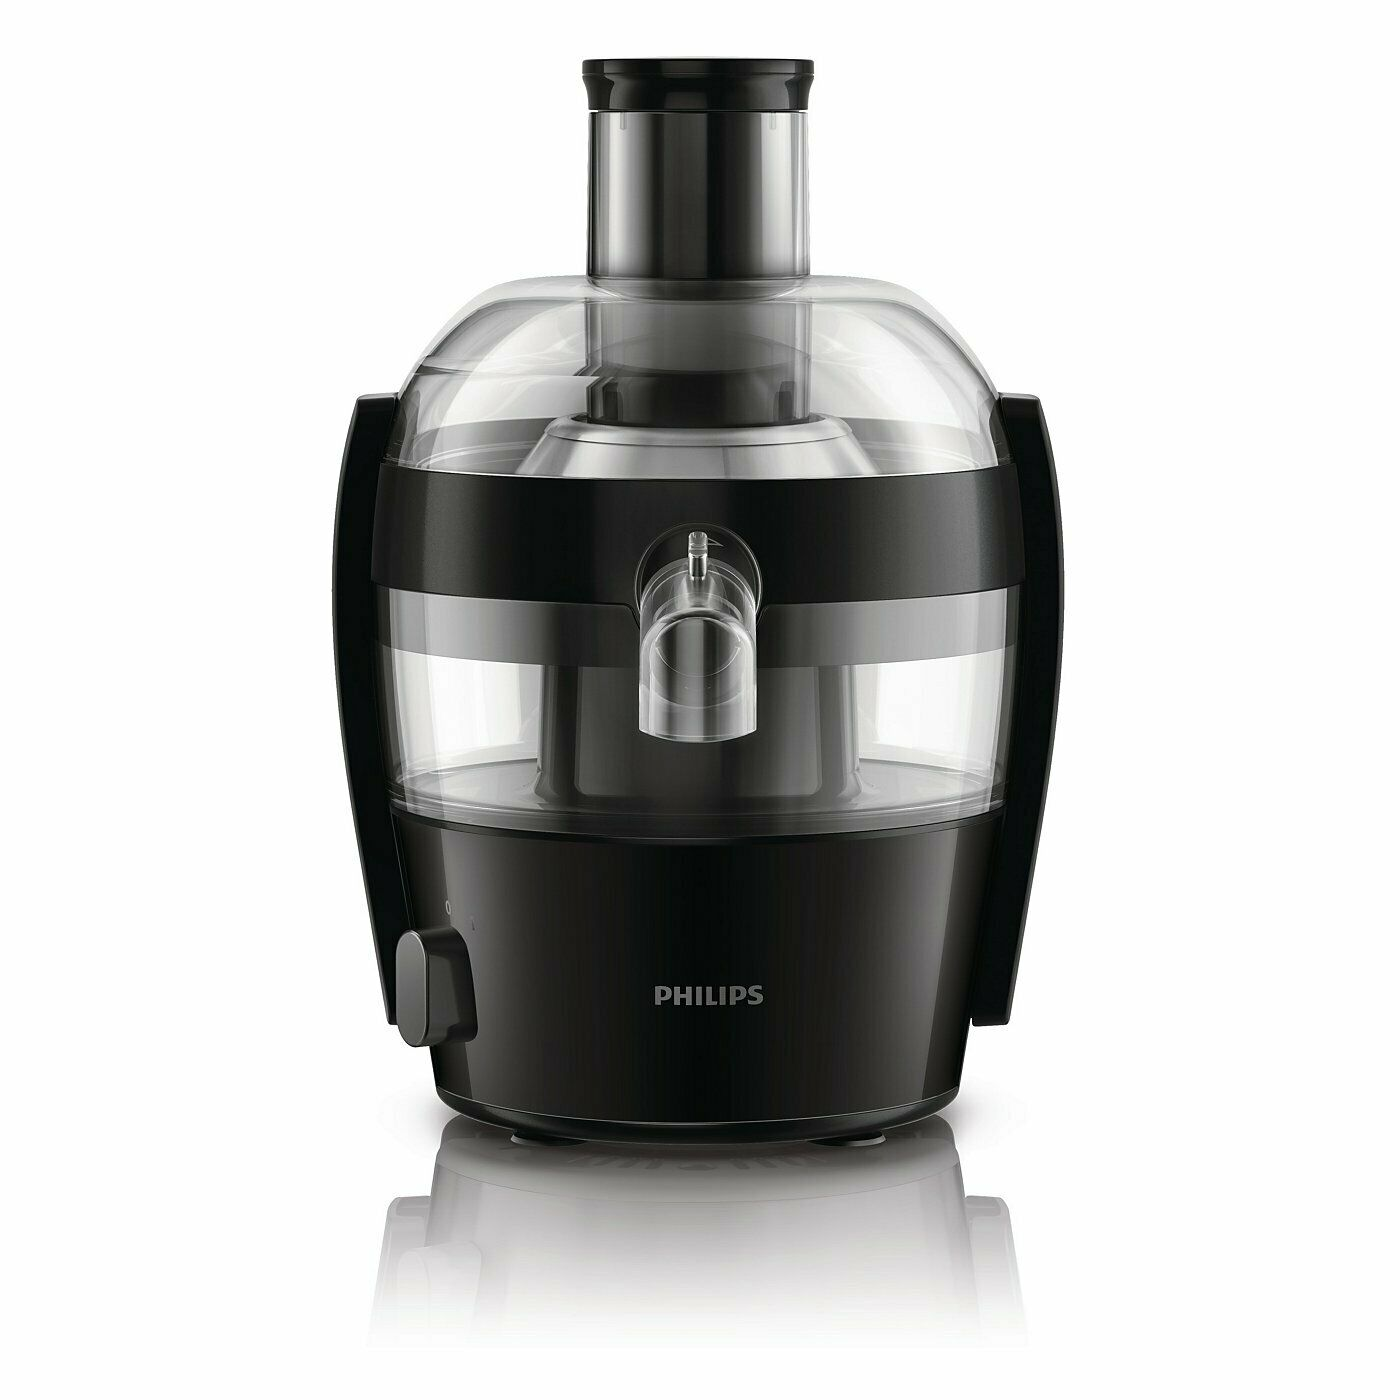 PHILIPS Viva Collection HR183200 Entsafter 400W Tropf Stopp 1.5 Liter B Ware